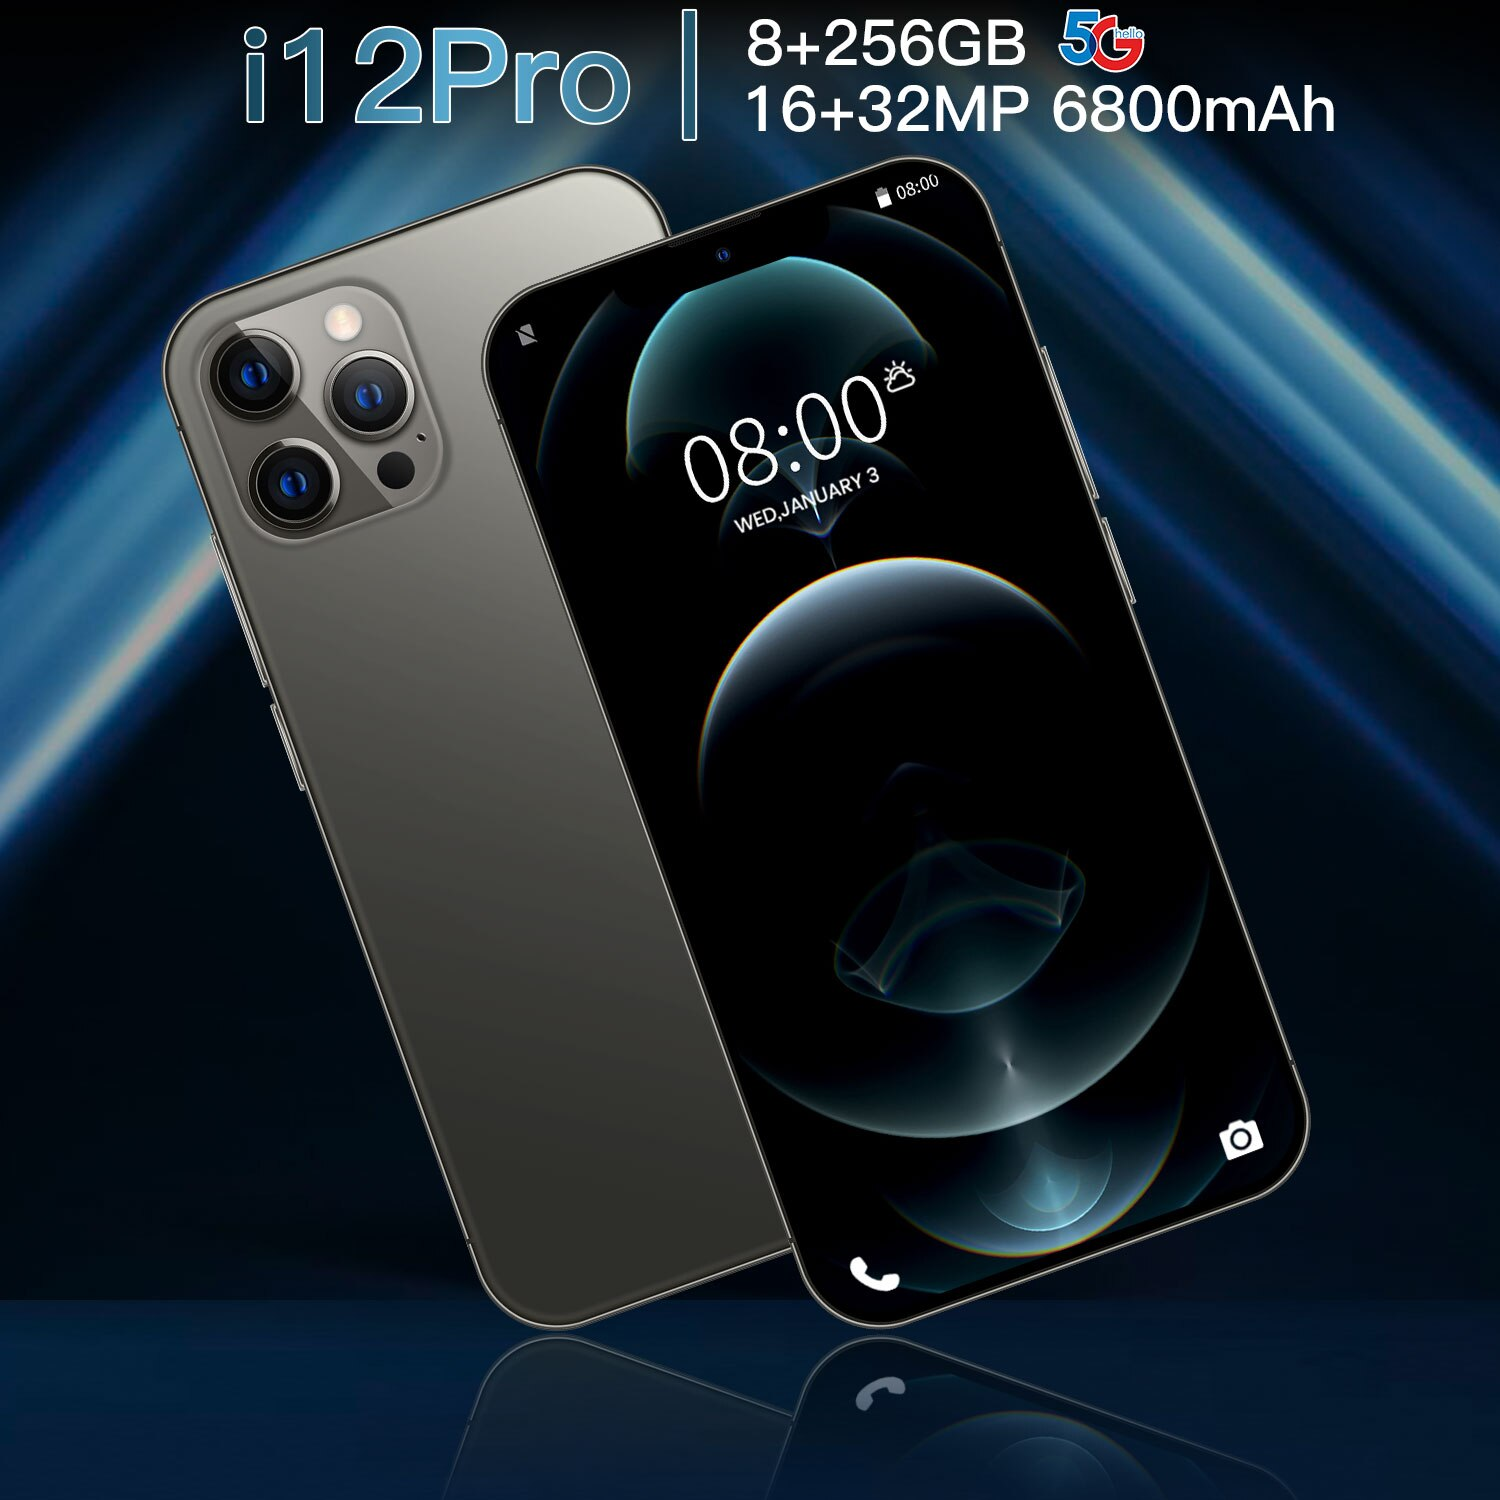 2021 New i12Pro Android 10 6800mAh 8GB 256GB 6.7Inch Smartphone Dual SIM Card Mobile Phone Google GP